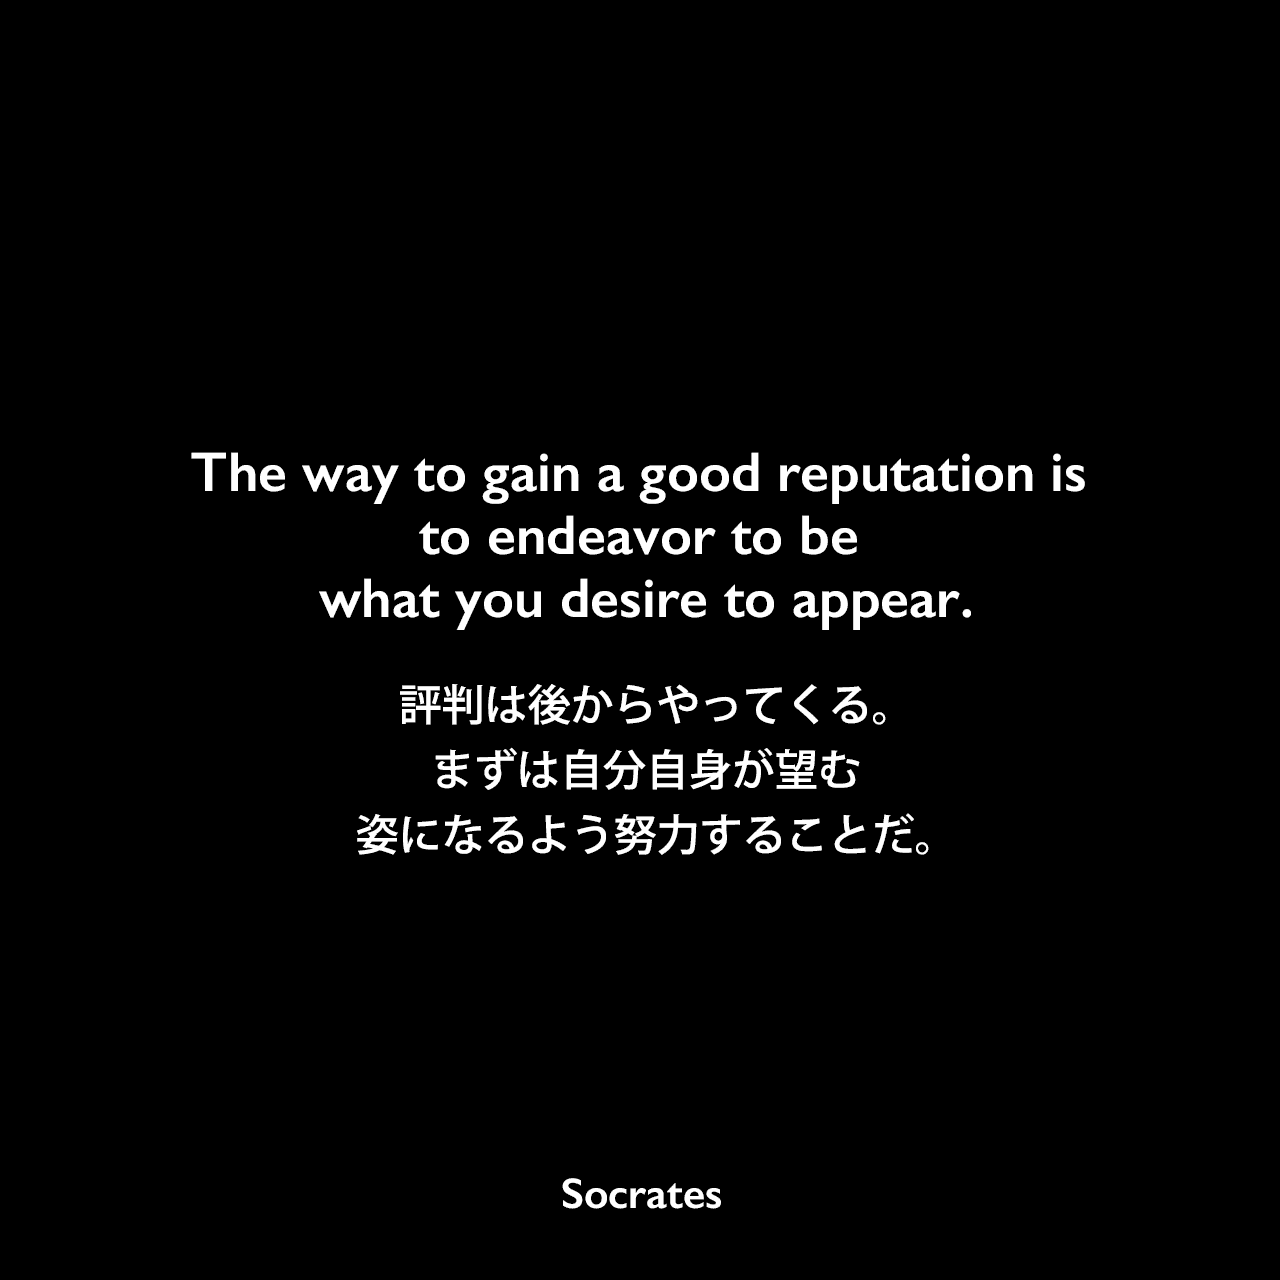 The way to gain a good reputation is to endeavor to be what you desire to appear.評判は後からやってくる。まずは自分自身が望む姿になるよう努力することだ。Socrates